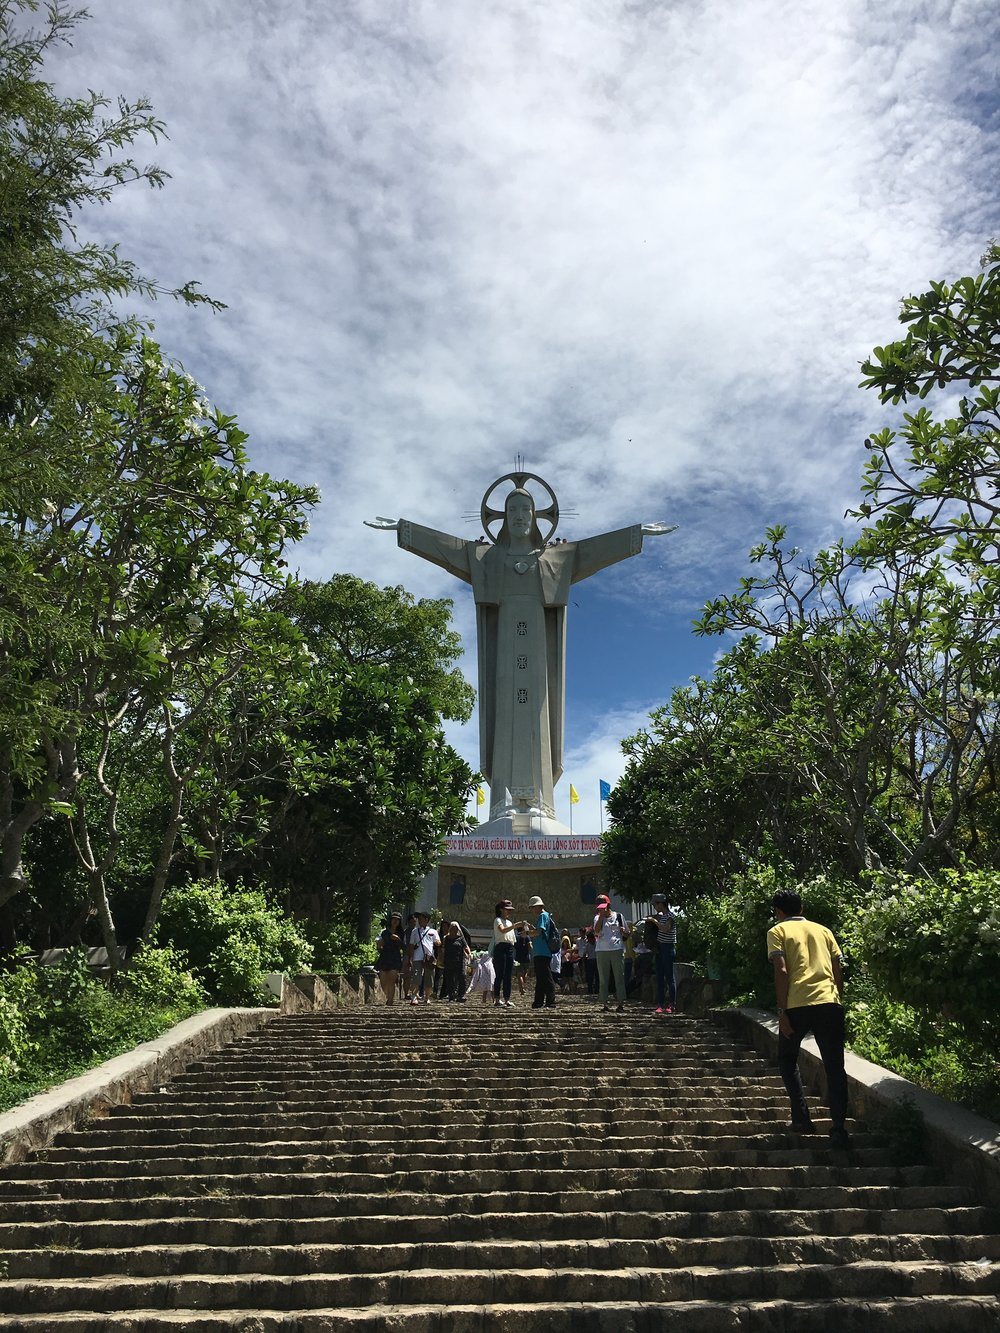 The Statue of Jesus. We walked up 847 stairs to see it up close and personal.